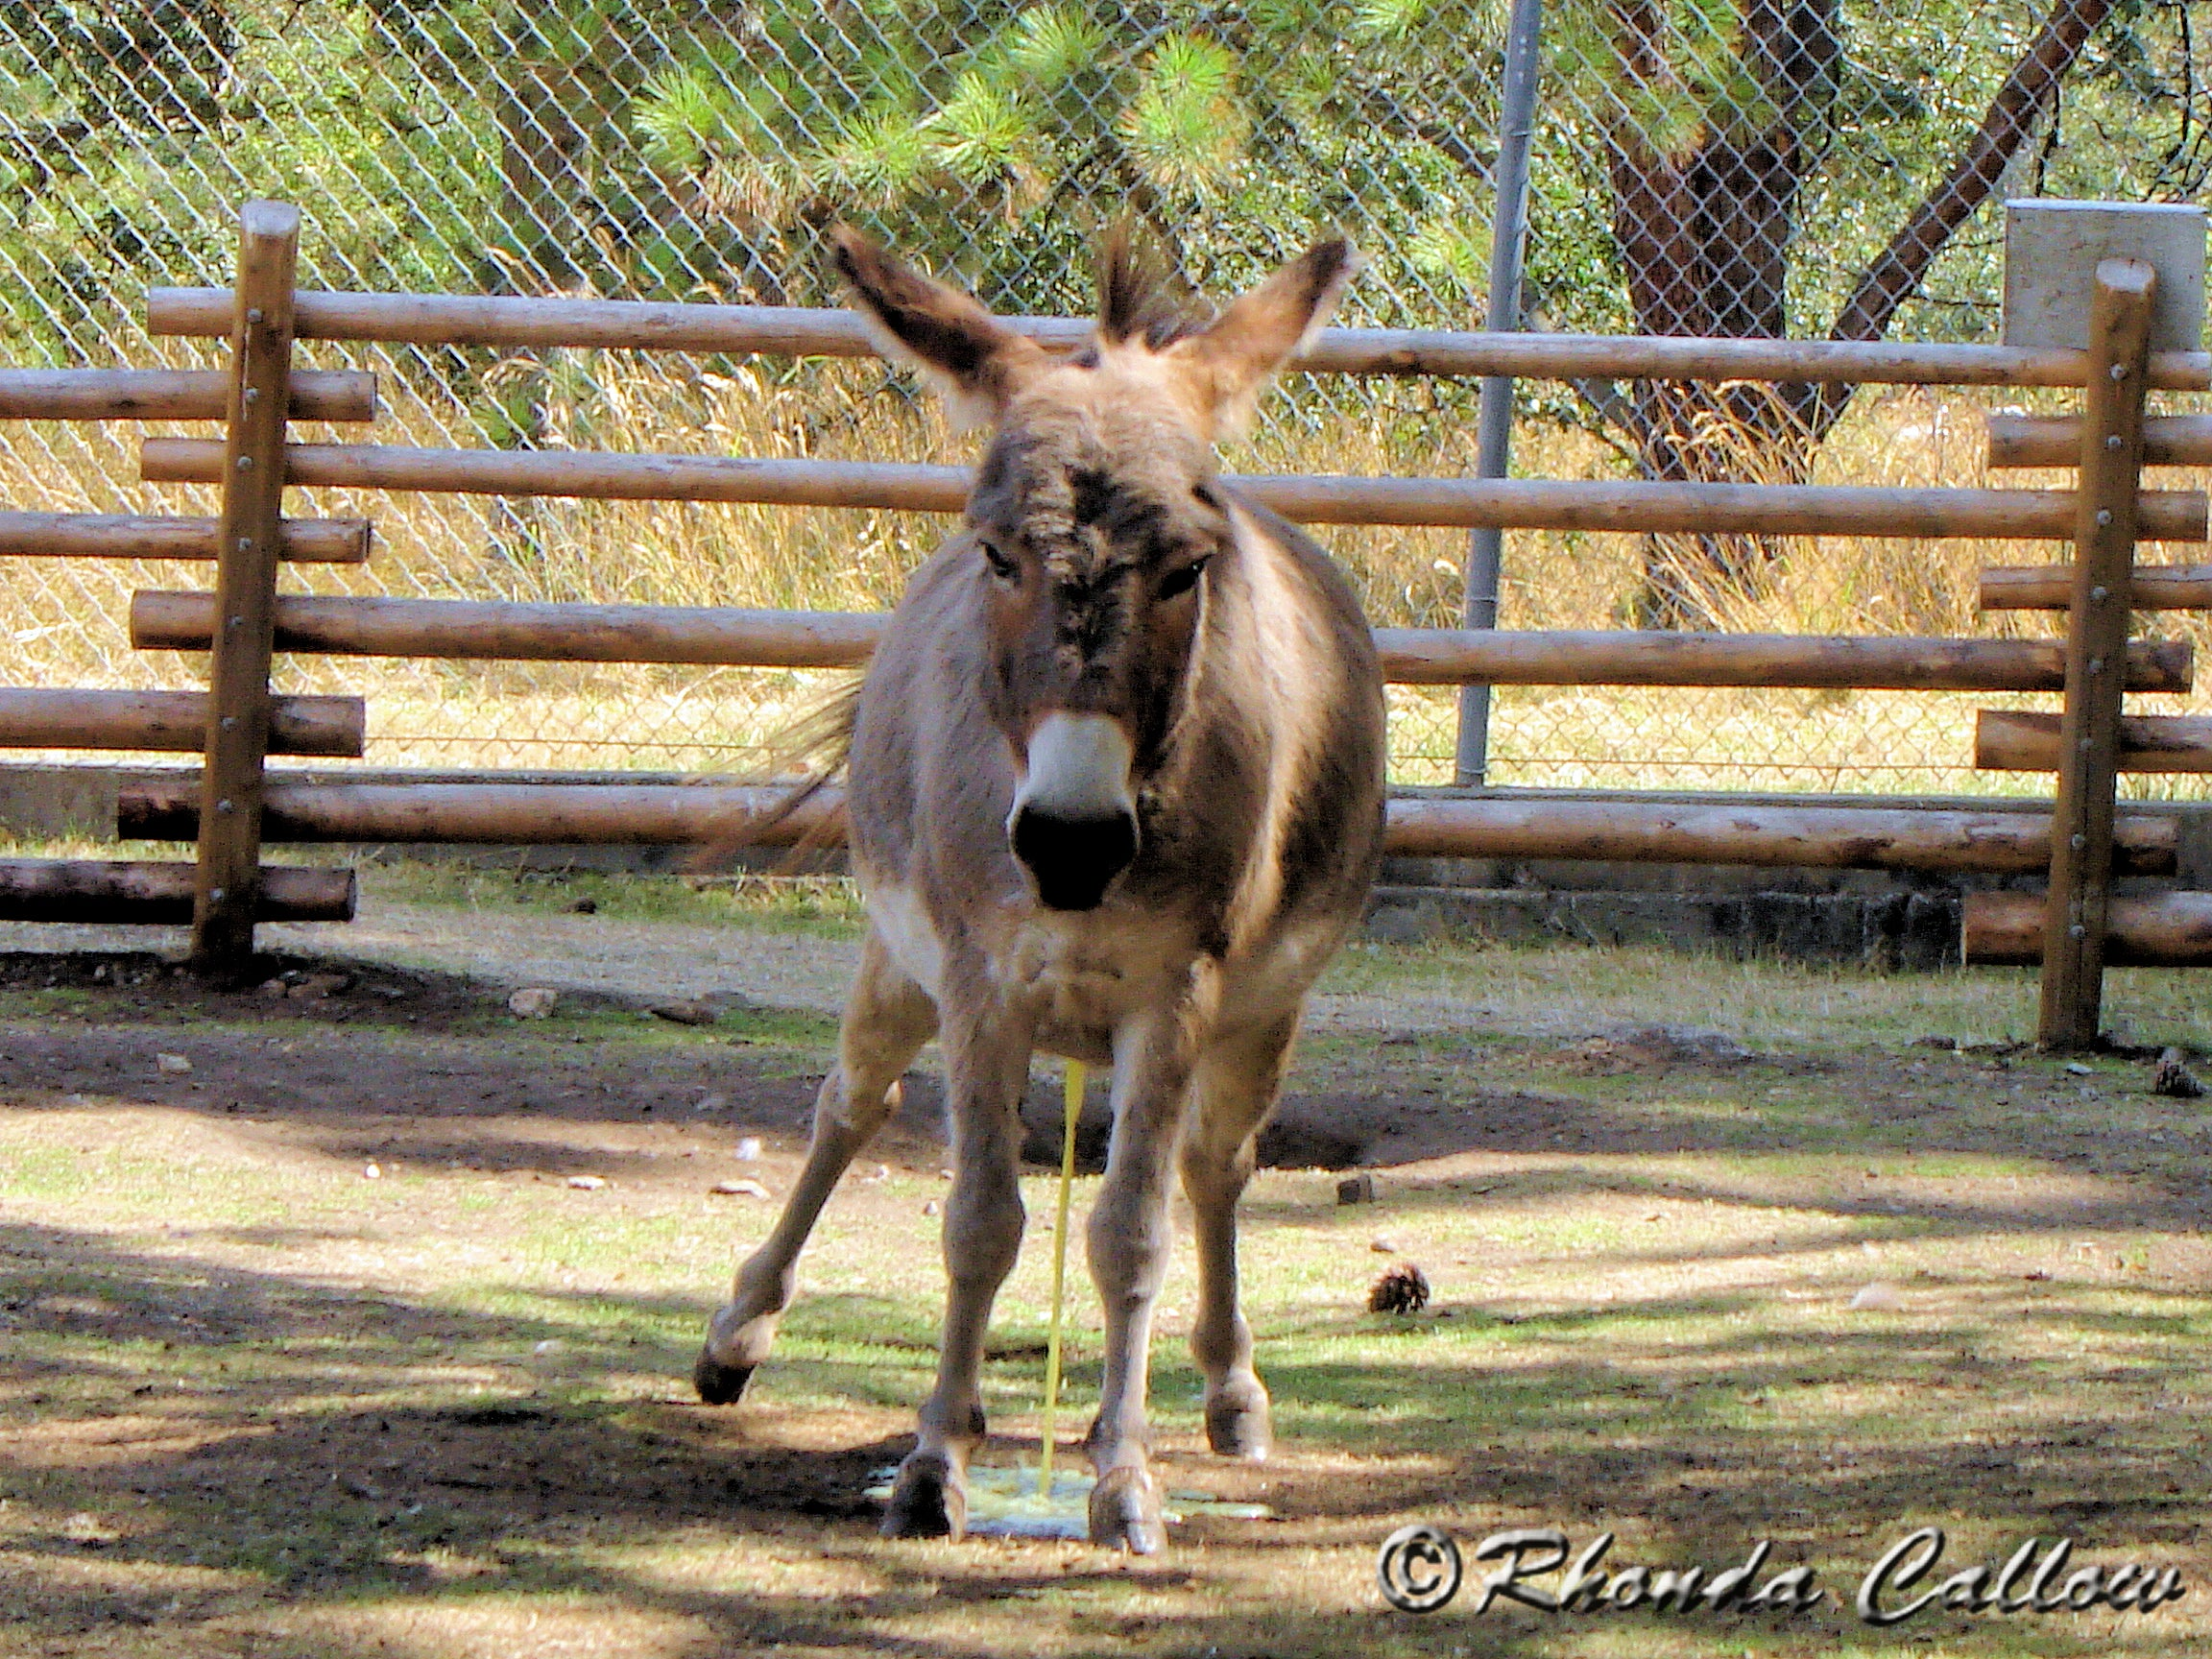 Funny animal photo of a donkey peeing at the Beacon Hill Petting Zoo in Victoria, BC, Canada